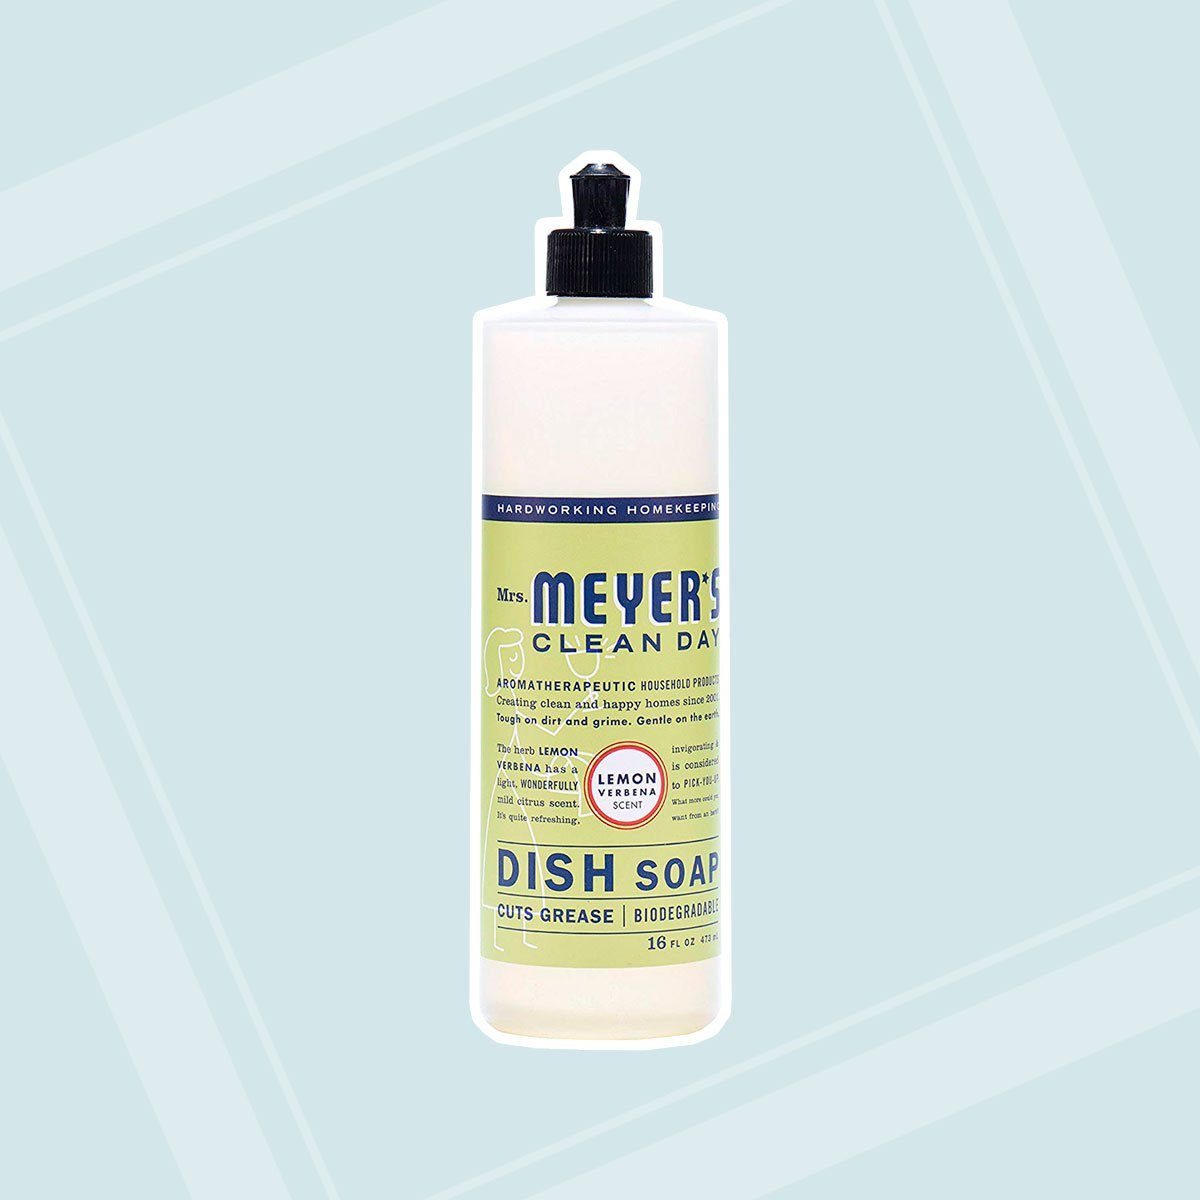 Mrs. Meyer's Clean Day Dish Soap